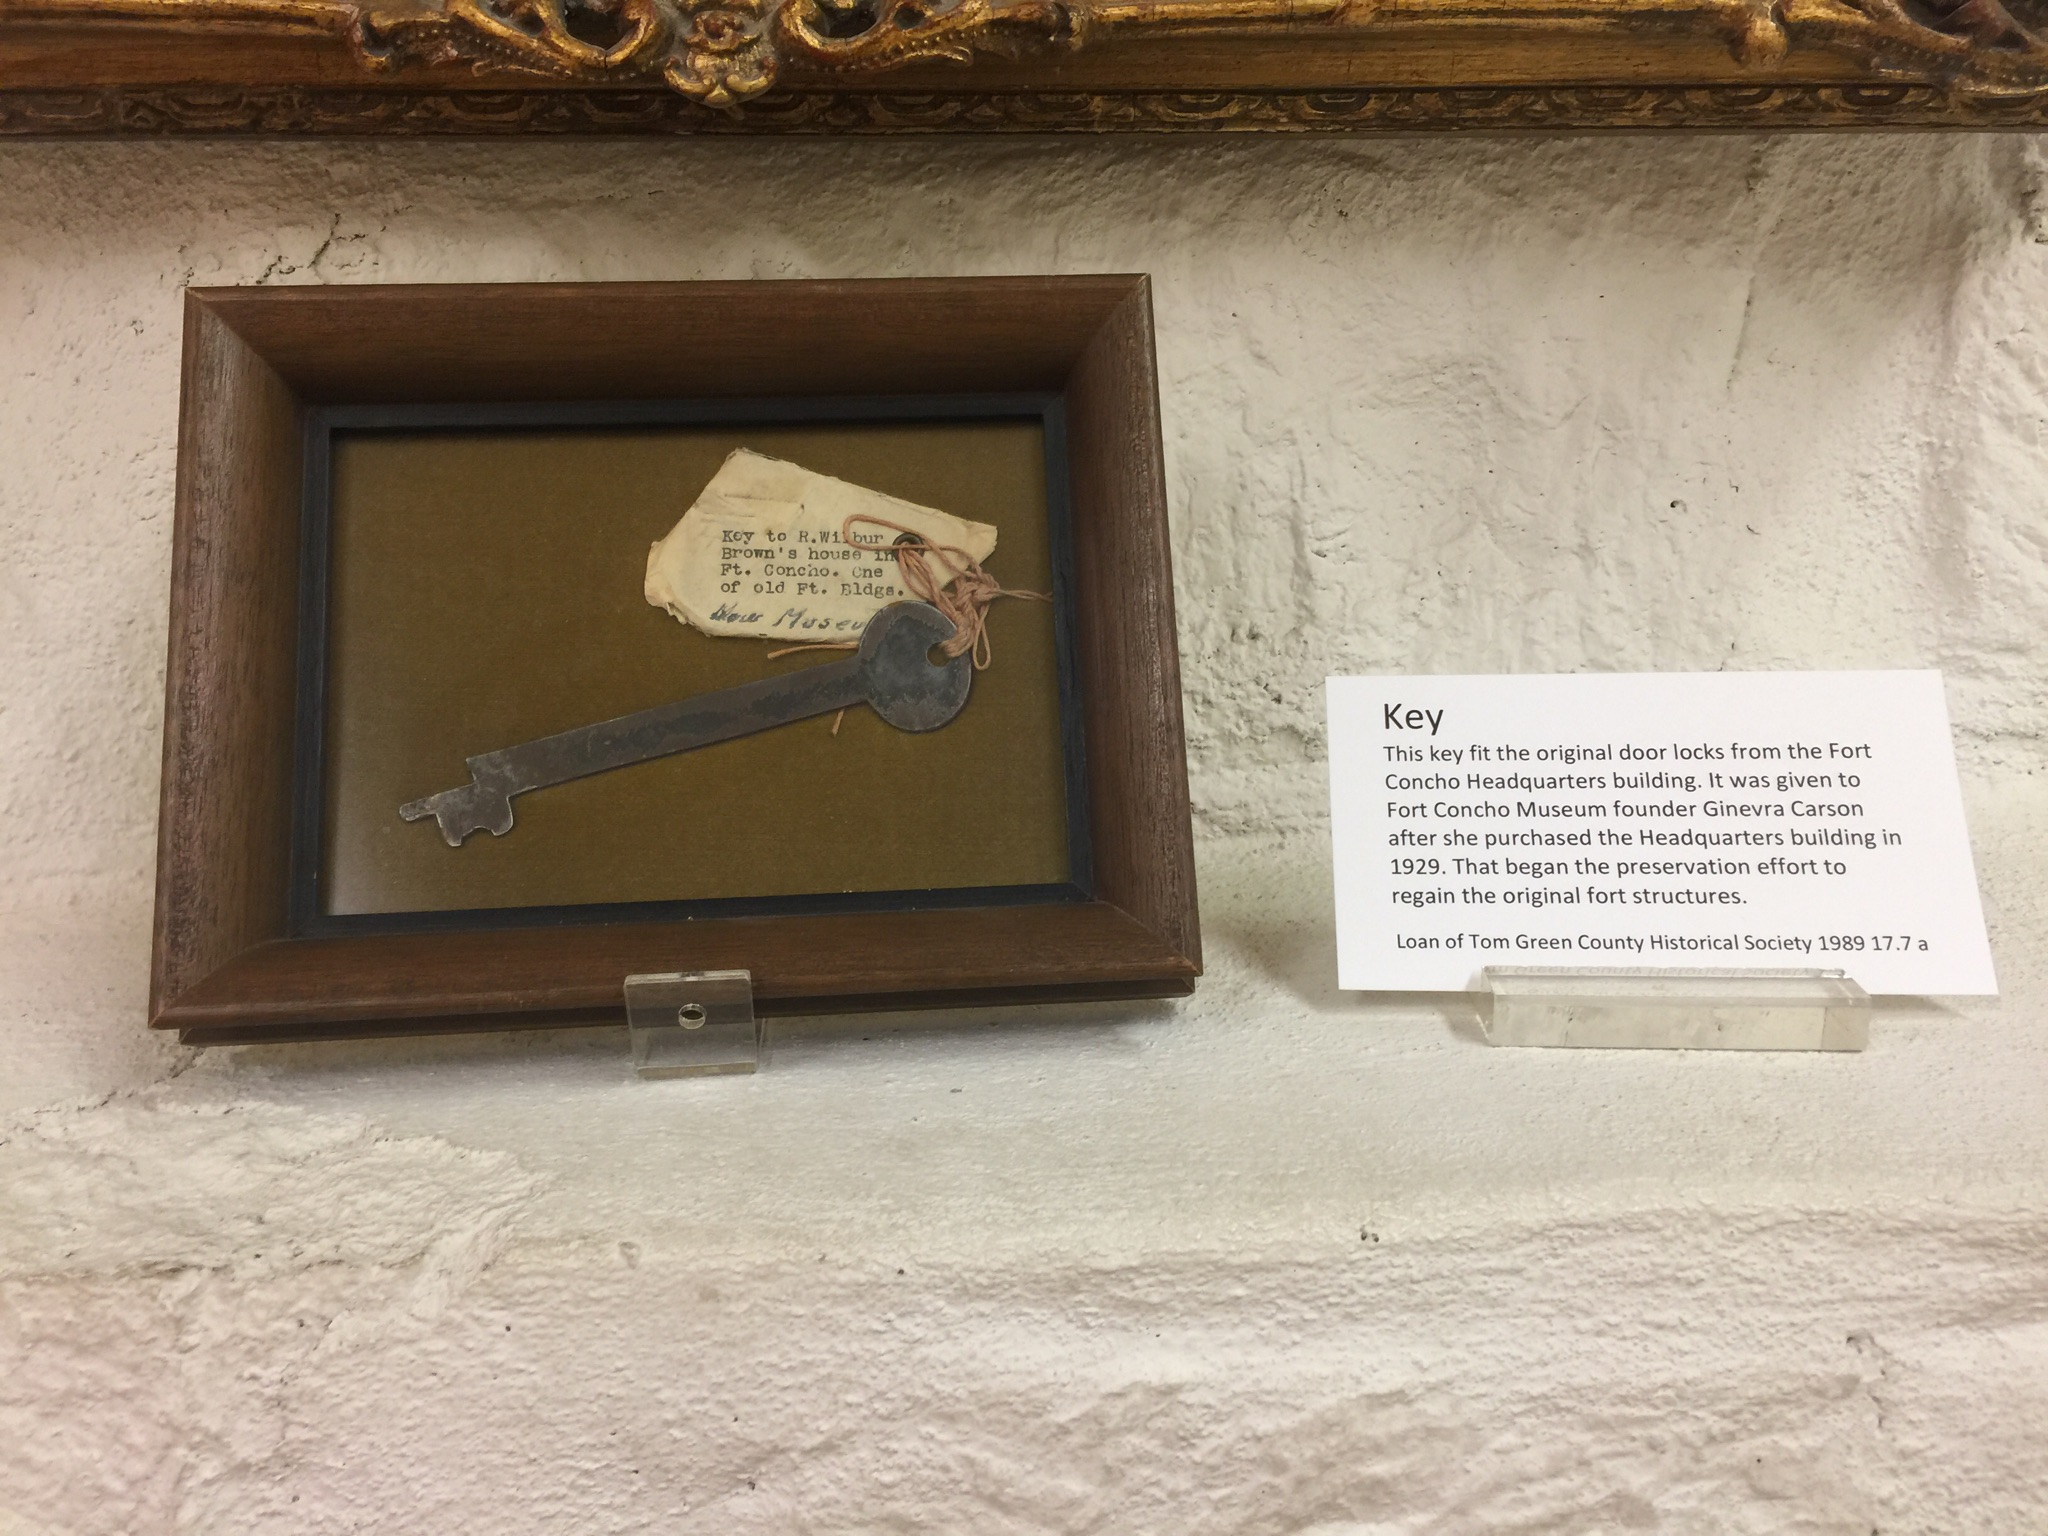 Key to the original Fort Concho Headquarters building